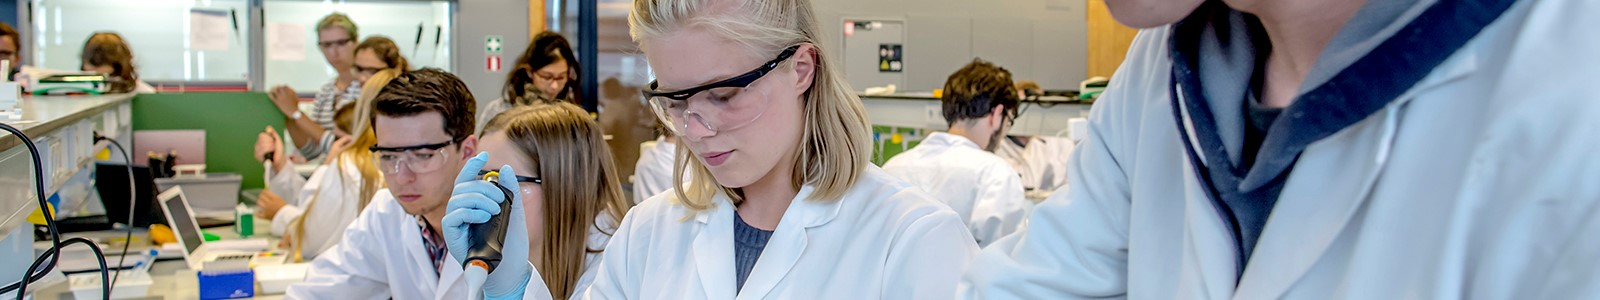 Molecular and Biophysical Life Sciences (MBLS) in lab